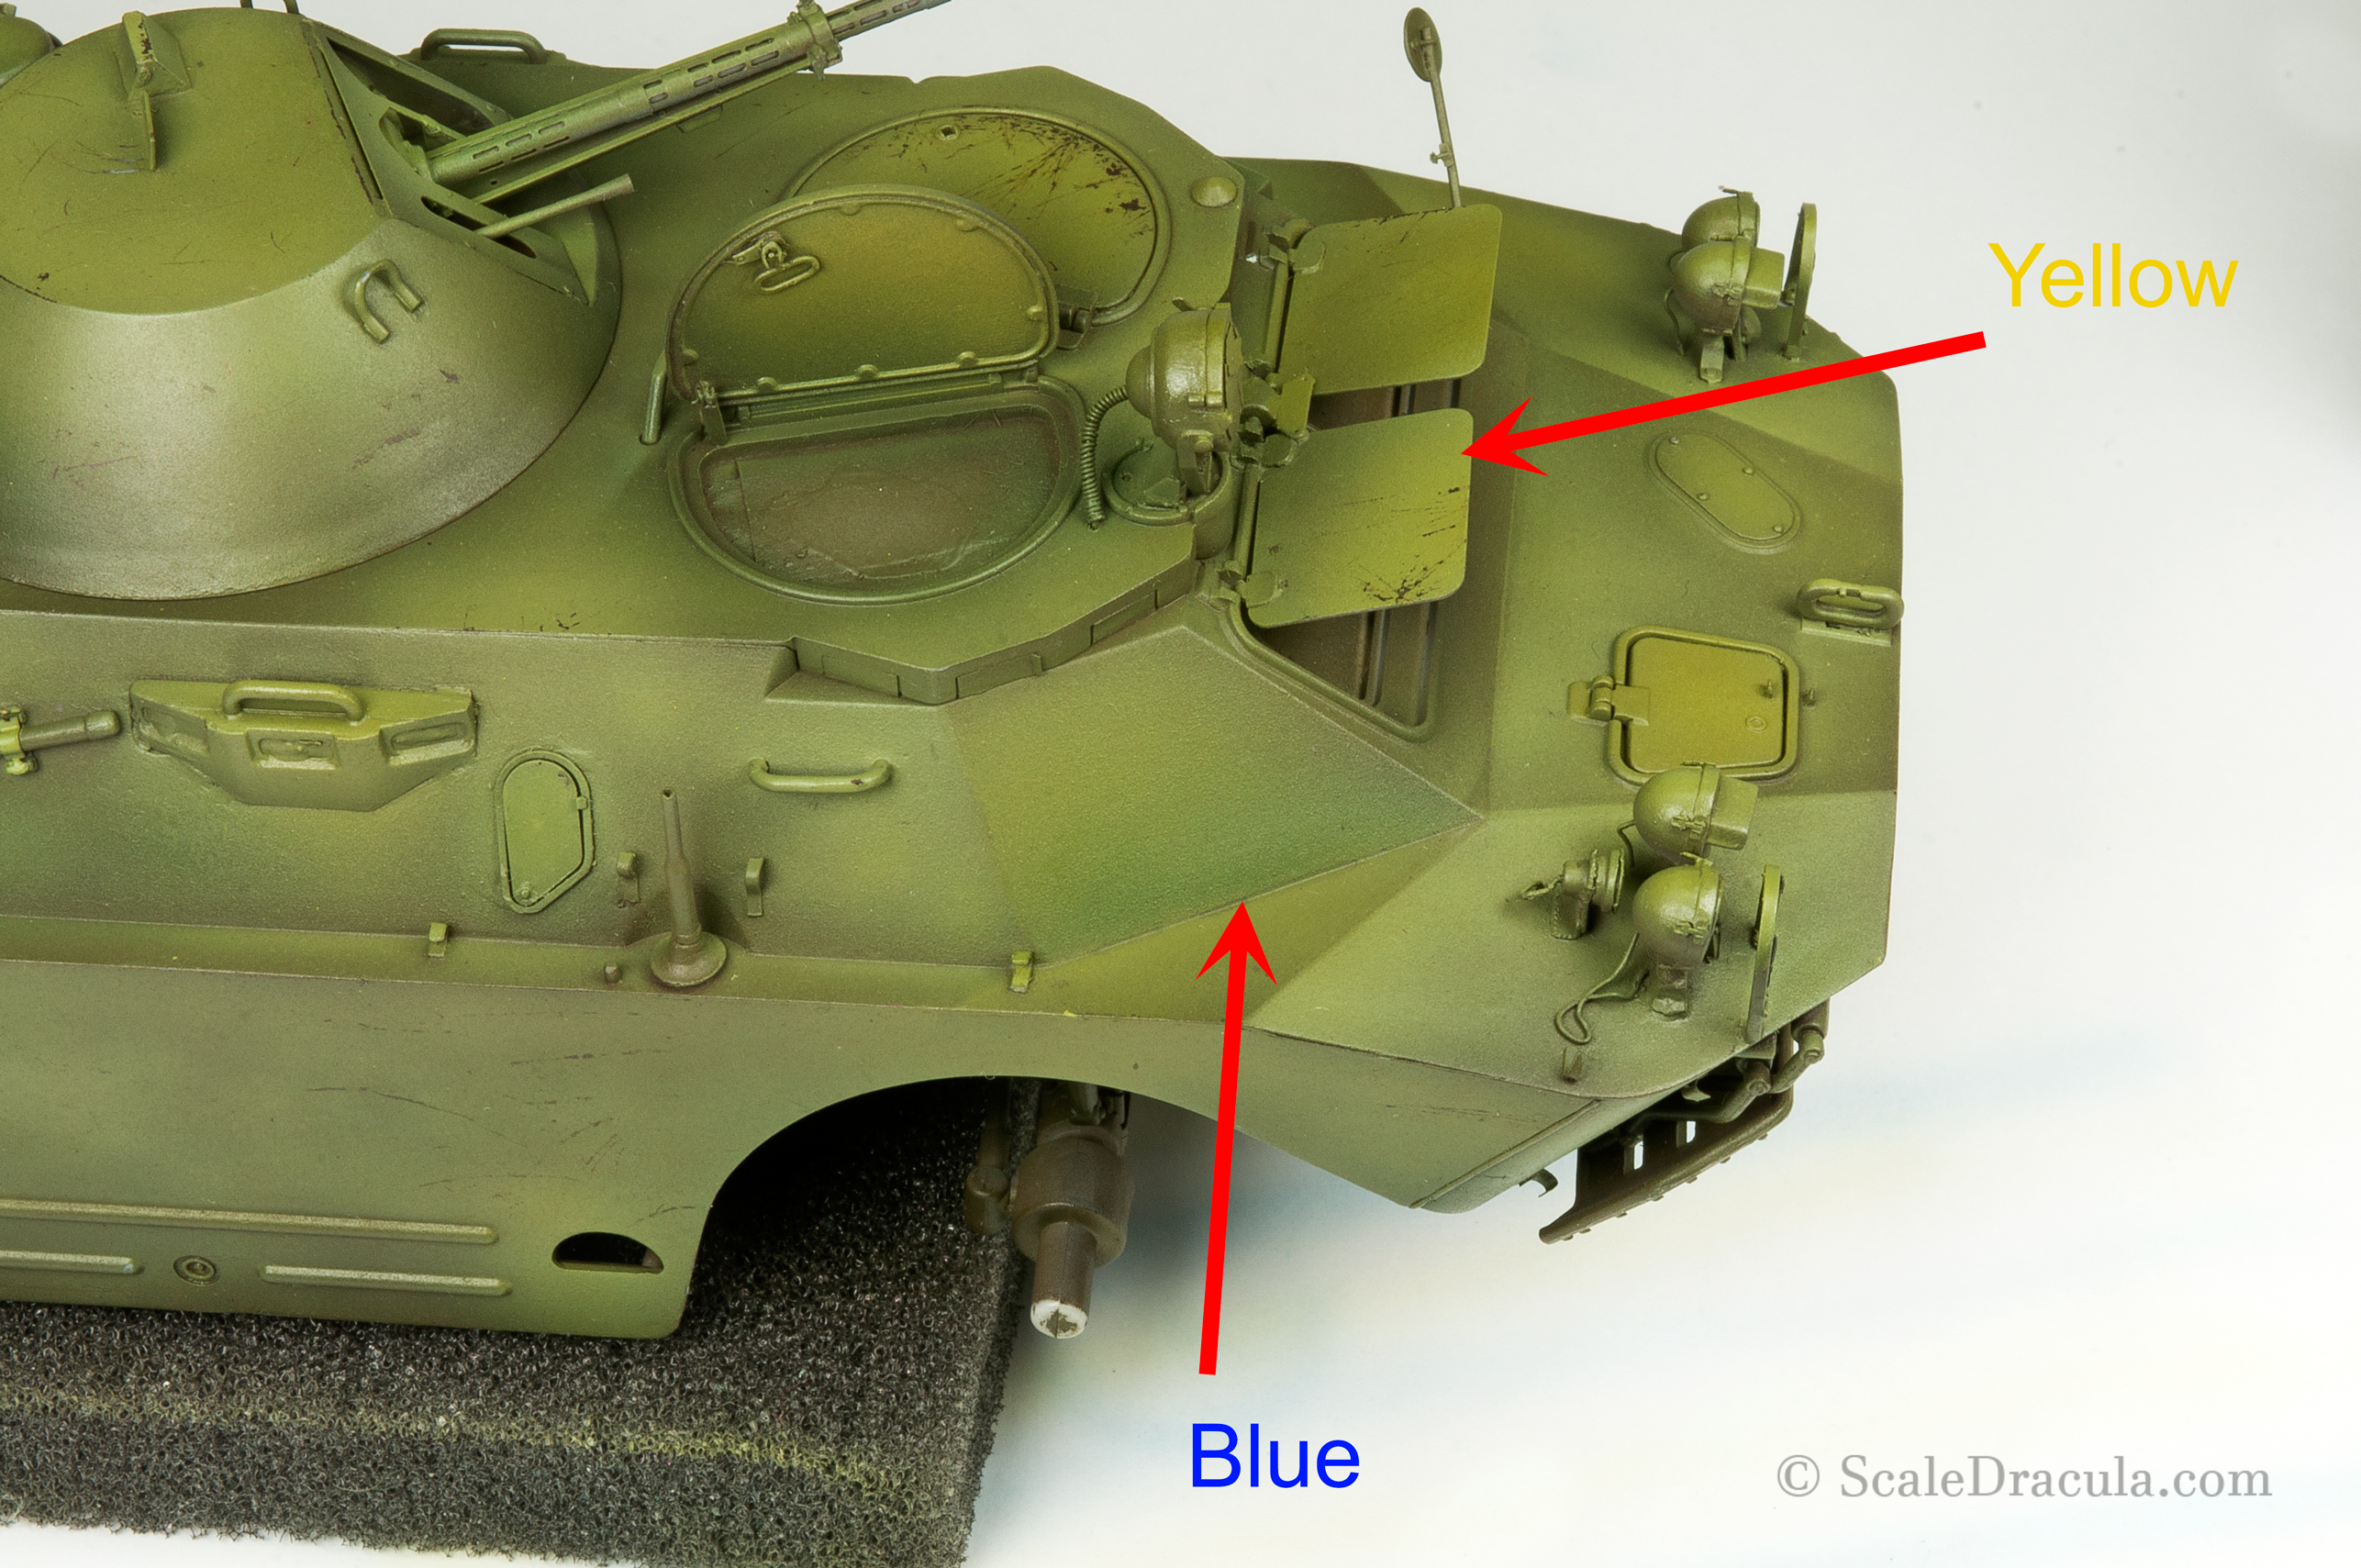 Filters applied with airbrush, BRDM-2 by Trumpeter